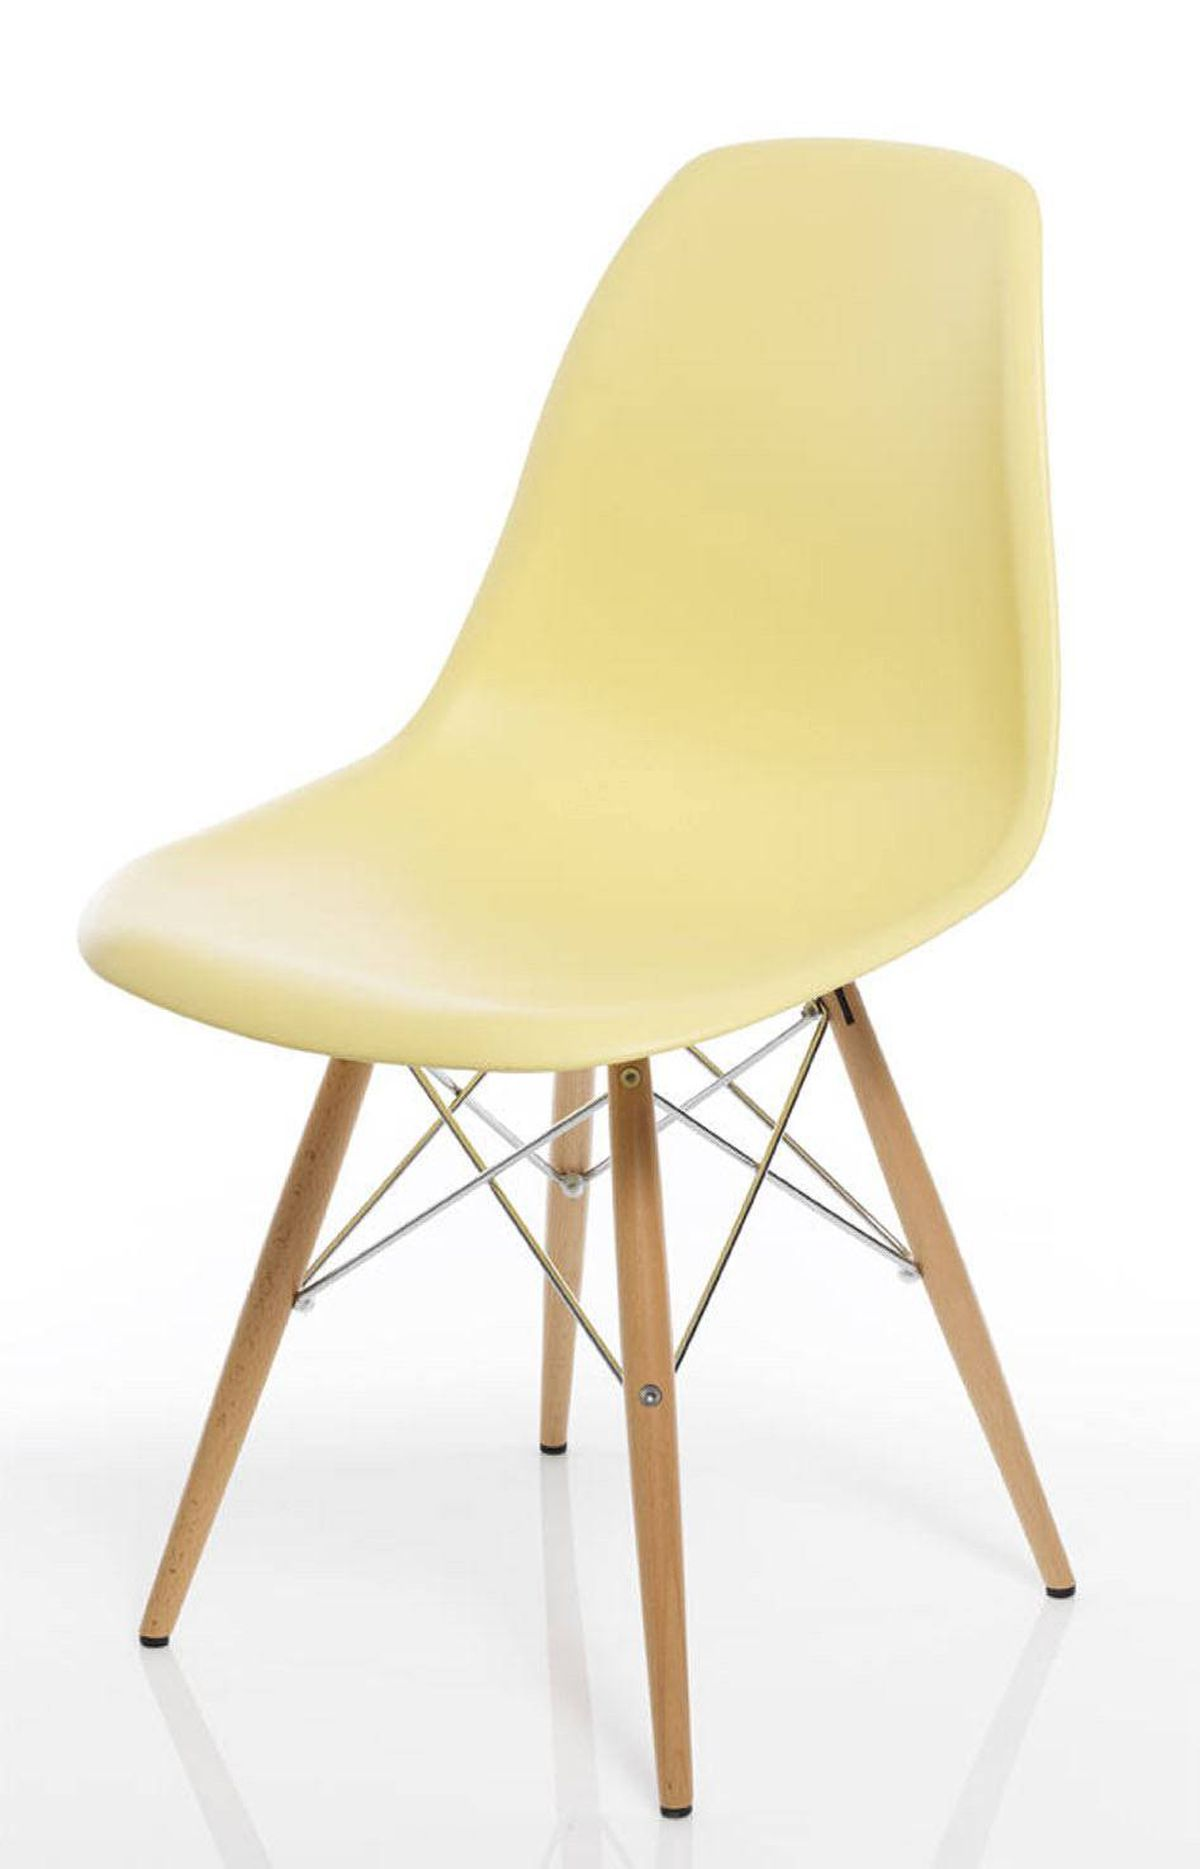 TREND: PASTELS Reproduction Eames DSW chair, $128 at Morba (www.morba.ca).